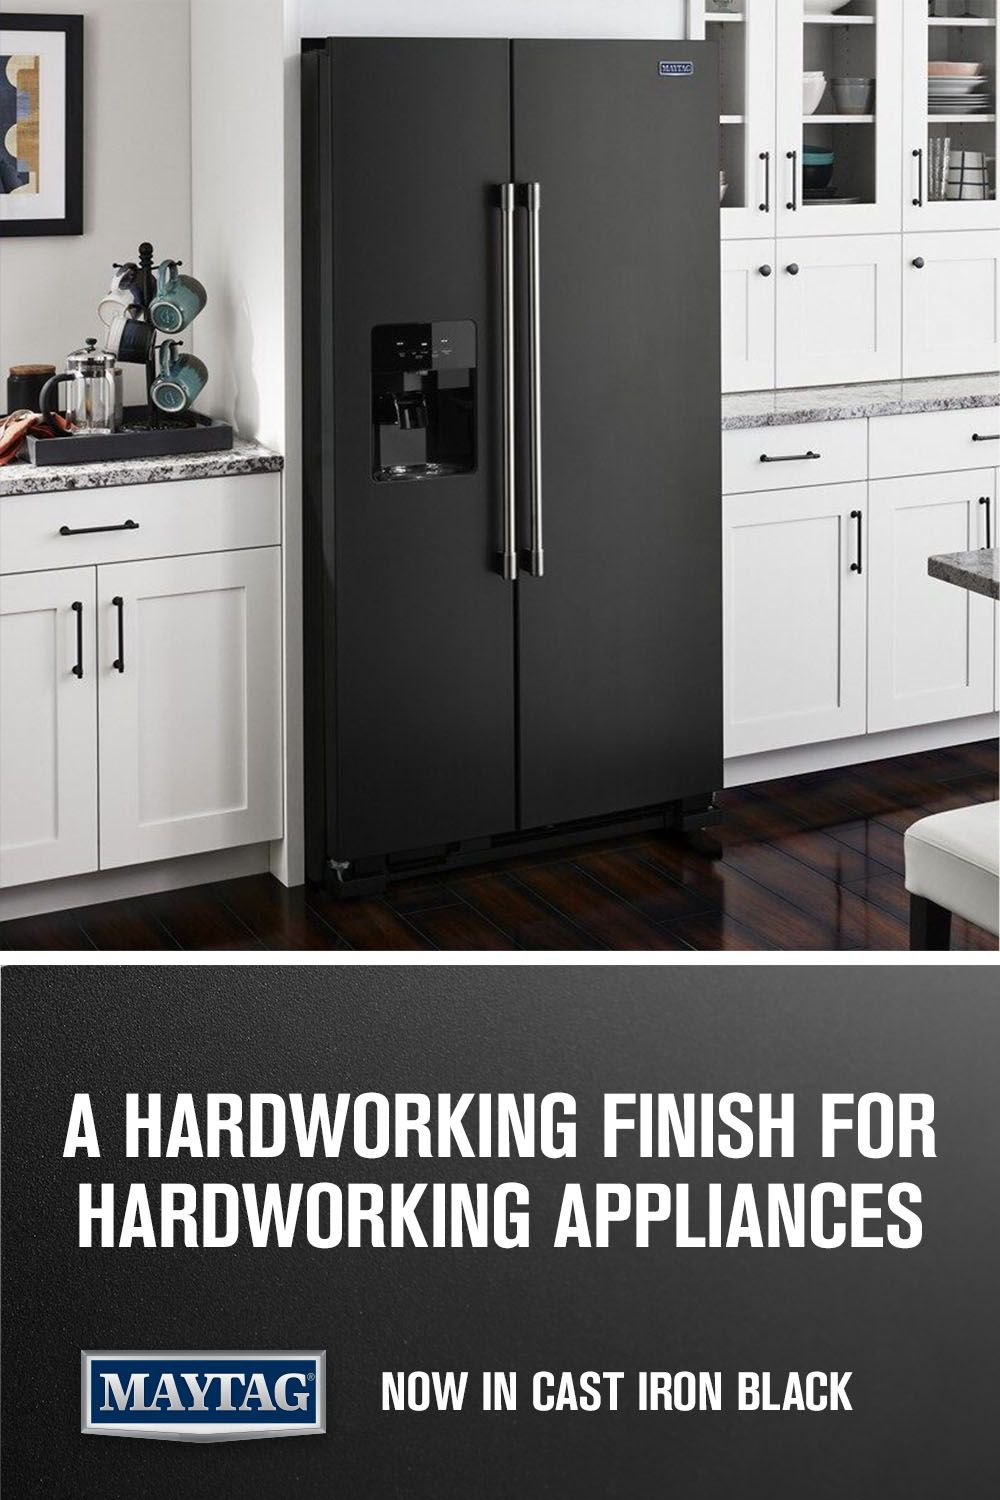 Maytag Cast Iron Black kitchen appliances. A new finish tough enough to stand up…